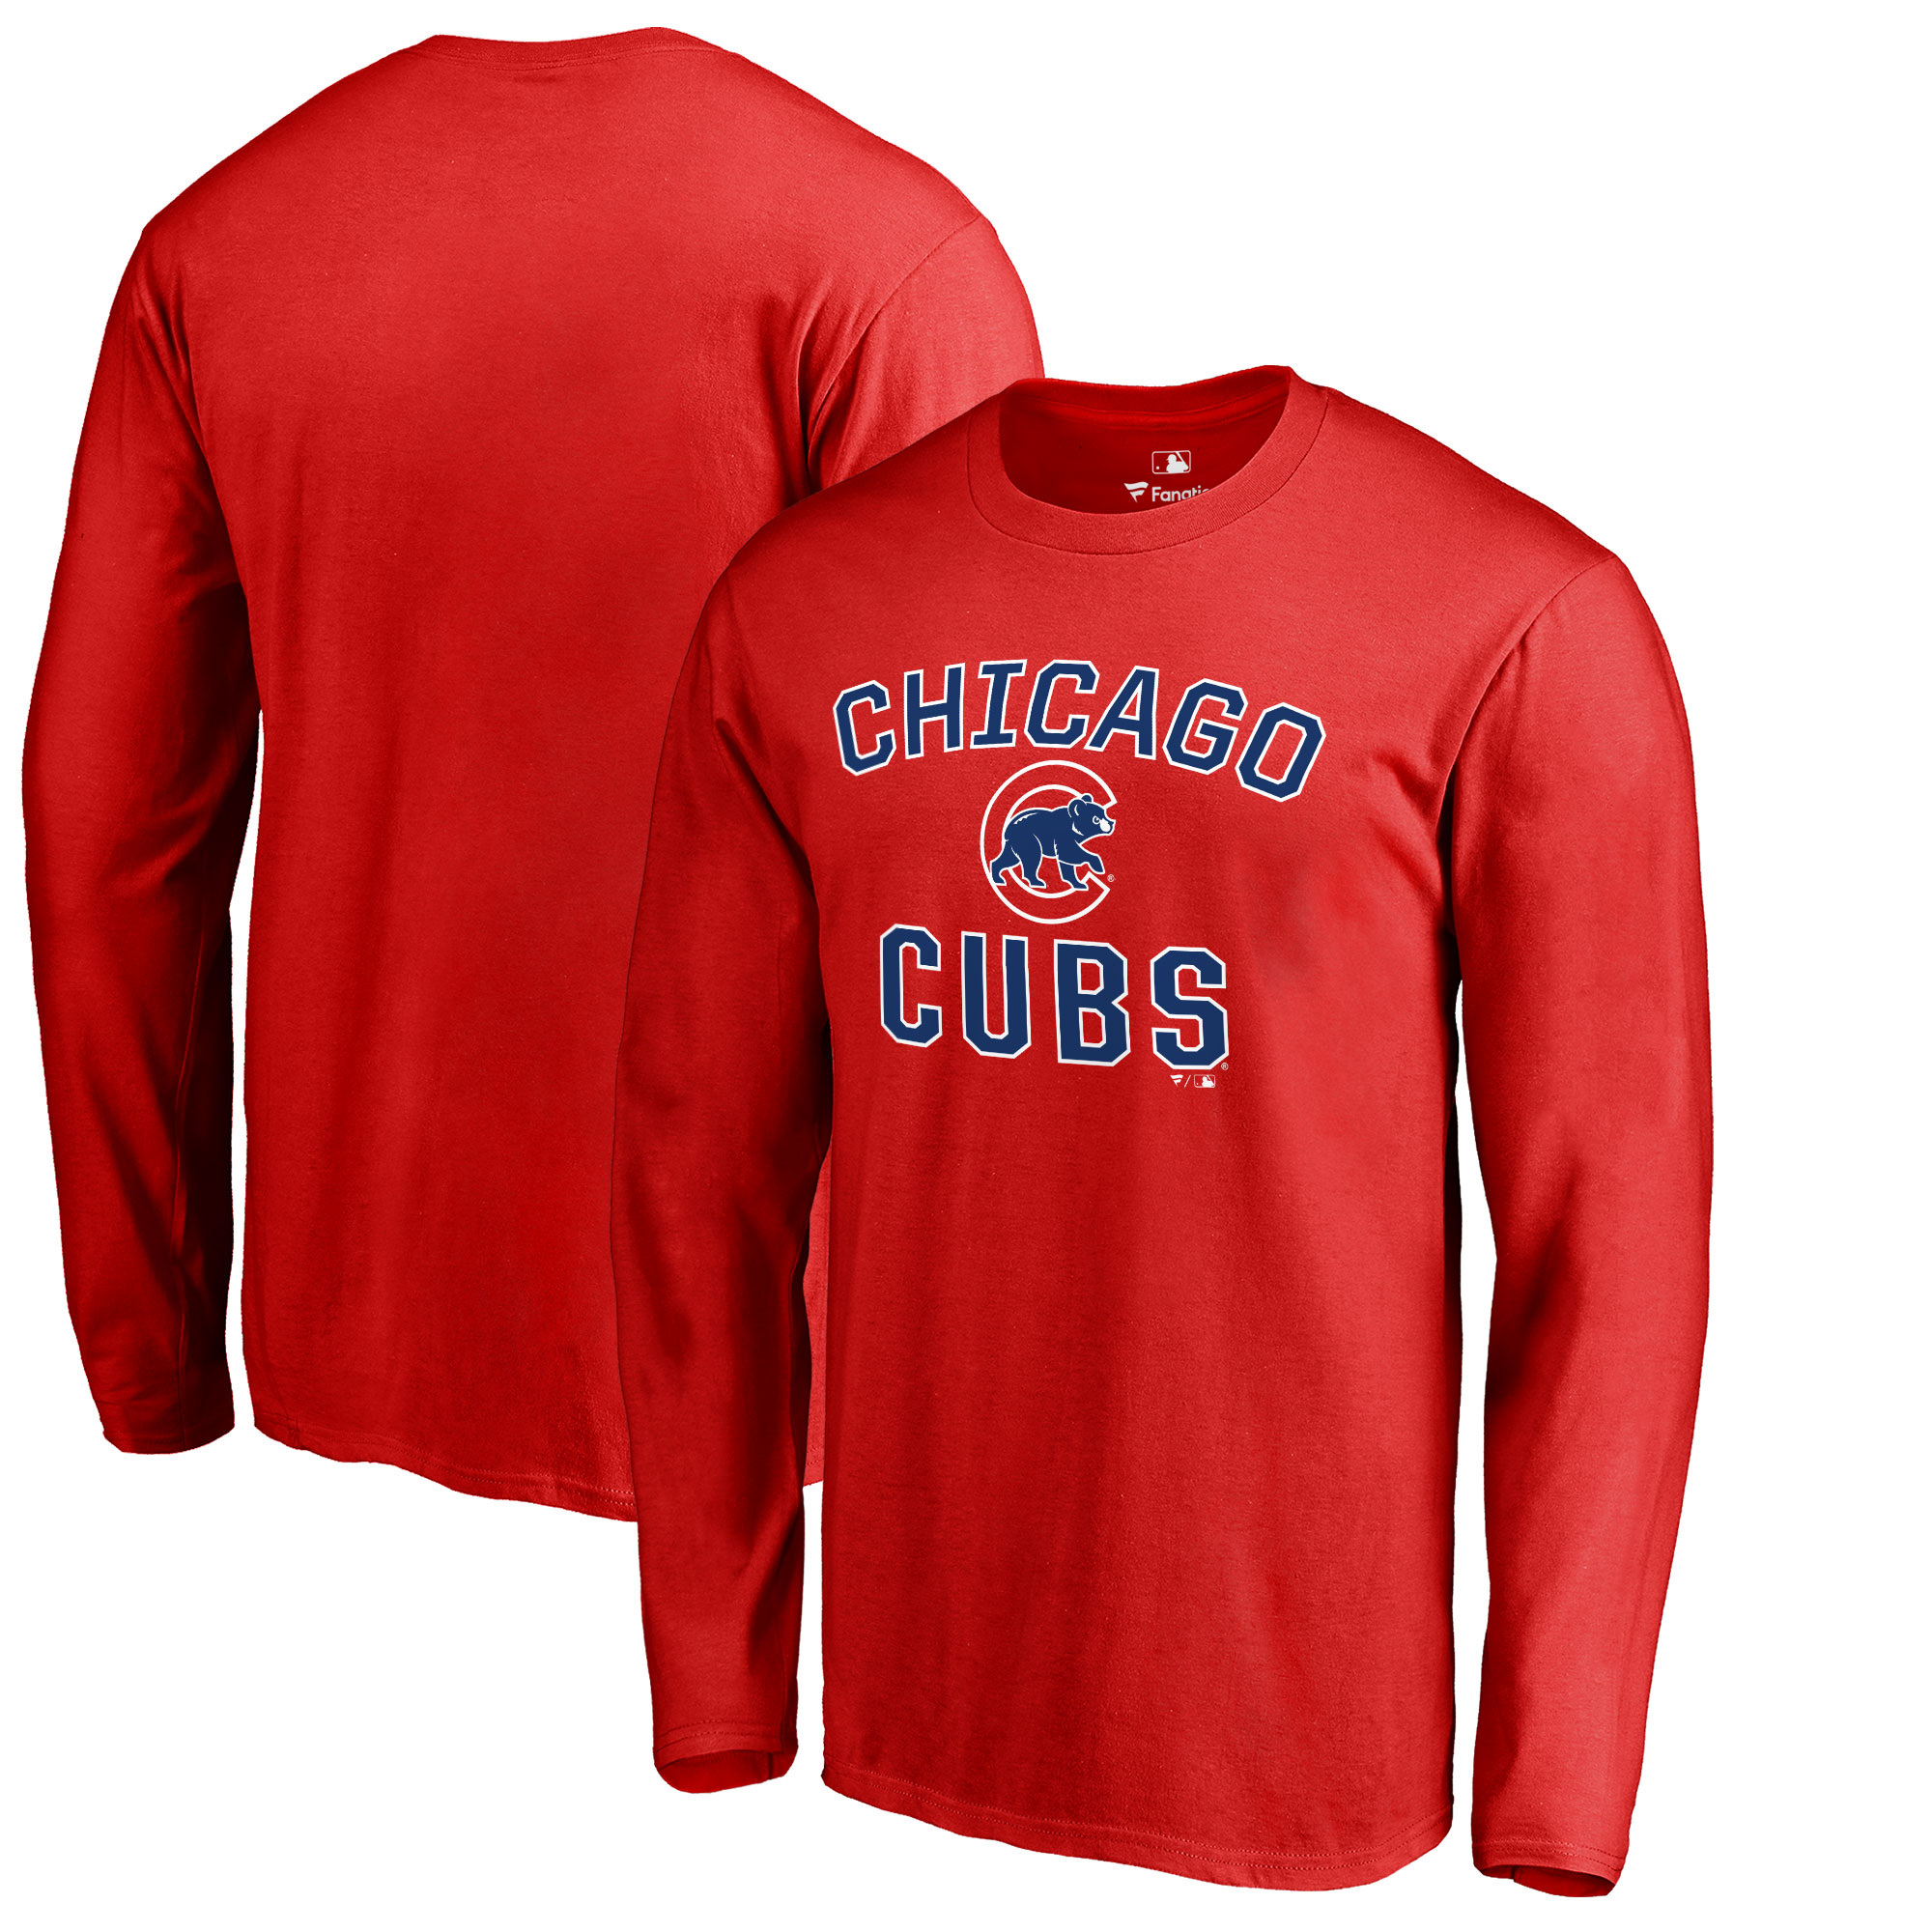 Chicago Cubs Victory Arch Long Sleeve T-Shirt - Red